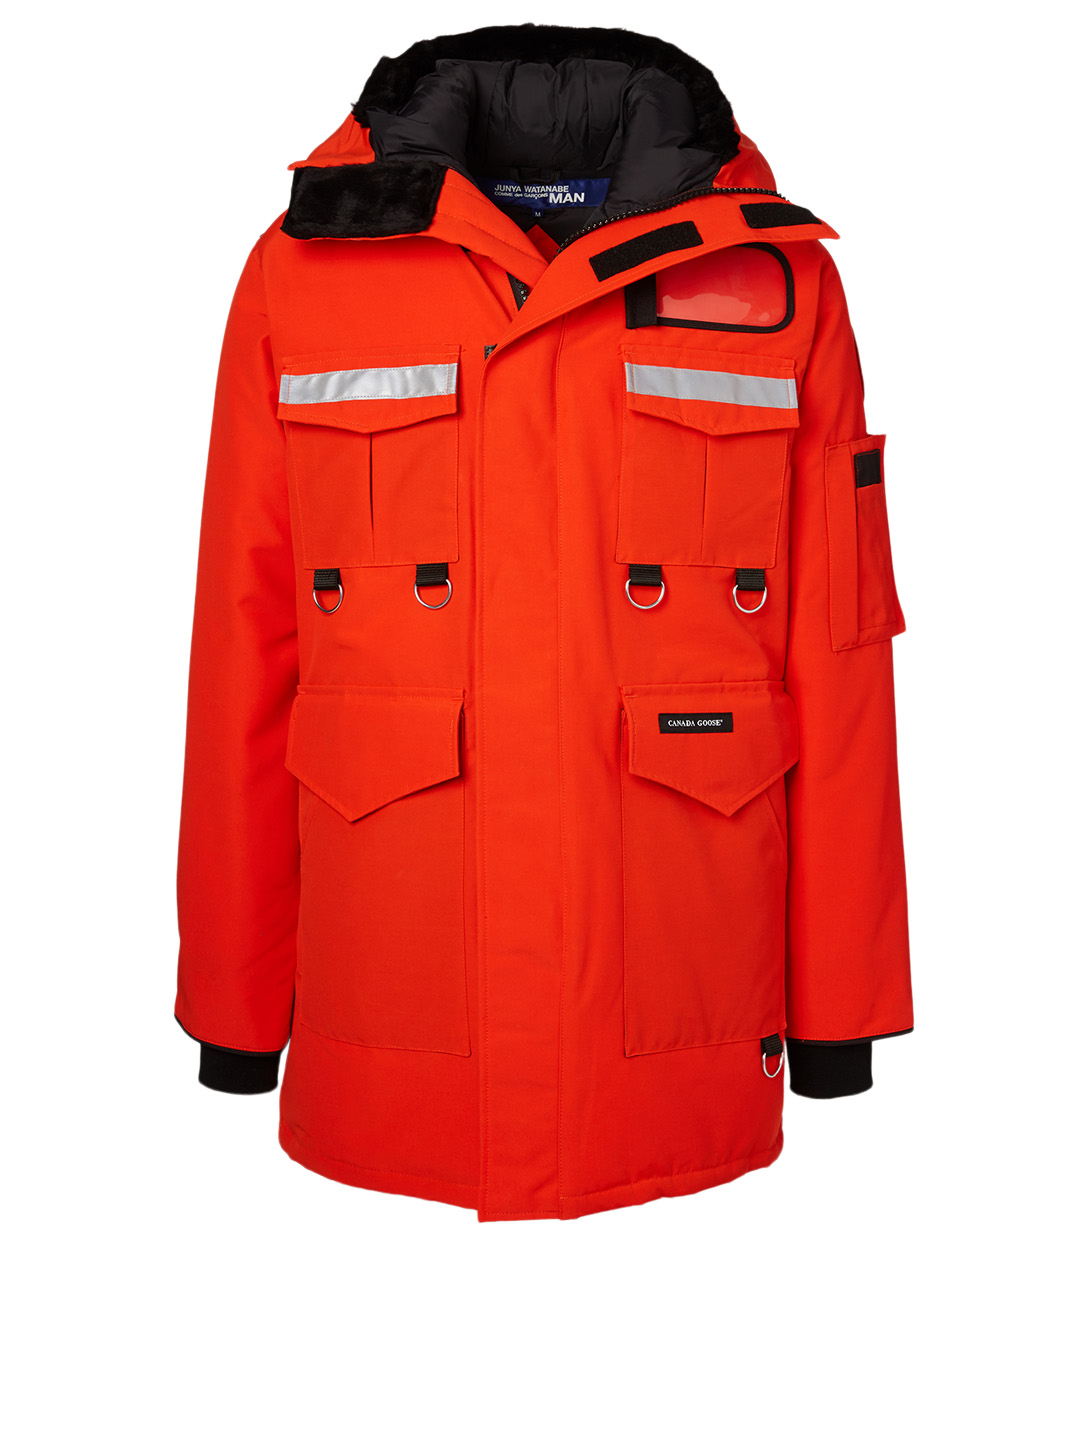 JUNYA WATANABE Junya Watanabe x Canada Goose Down Coat Men's Orange